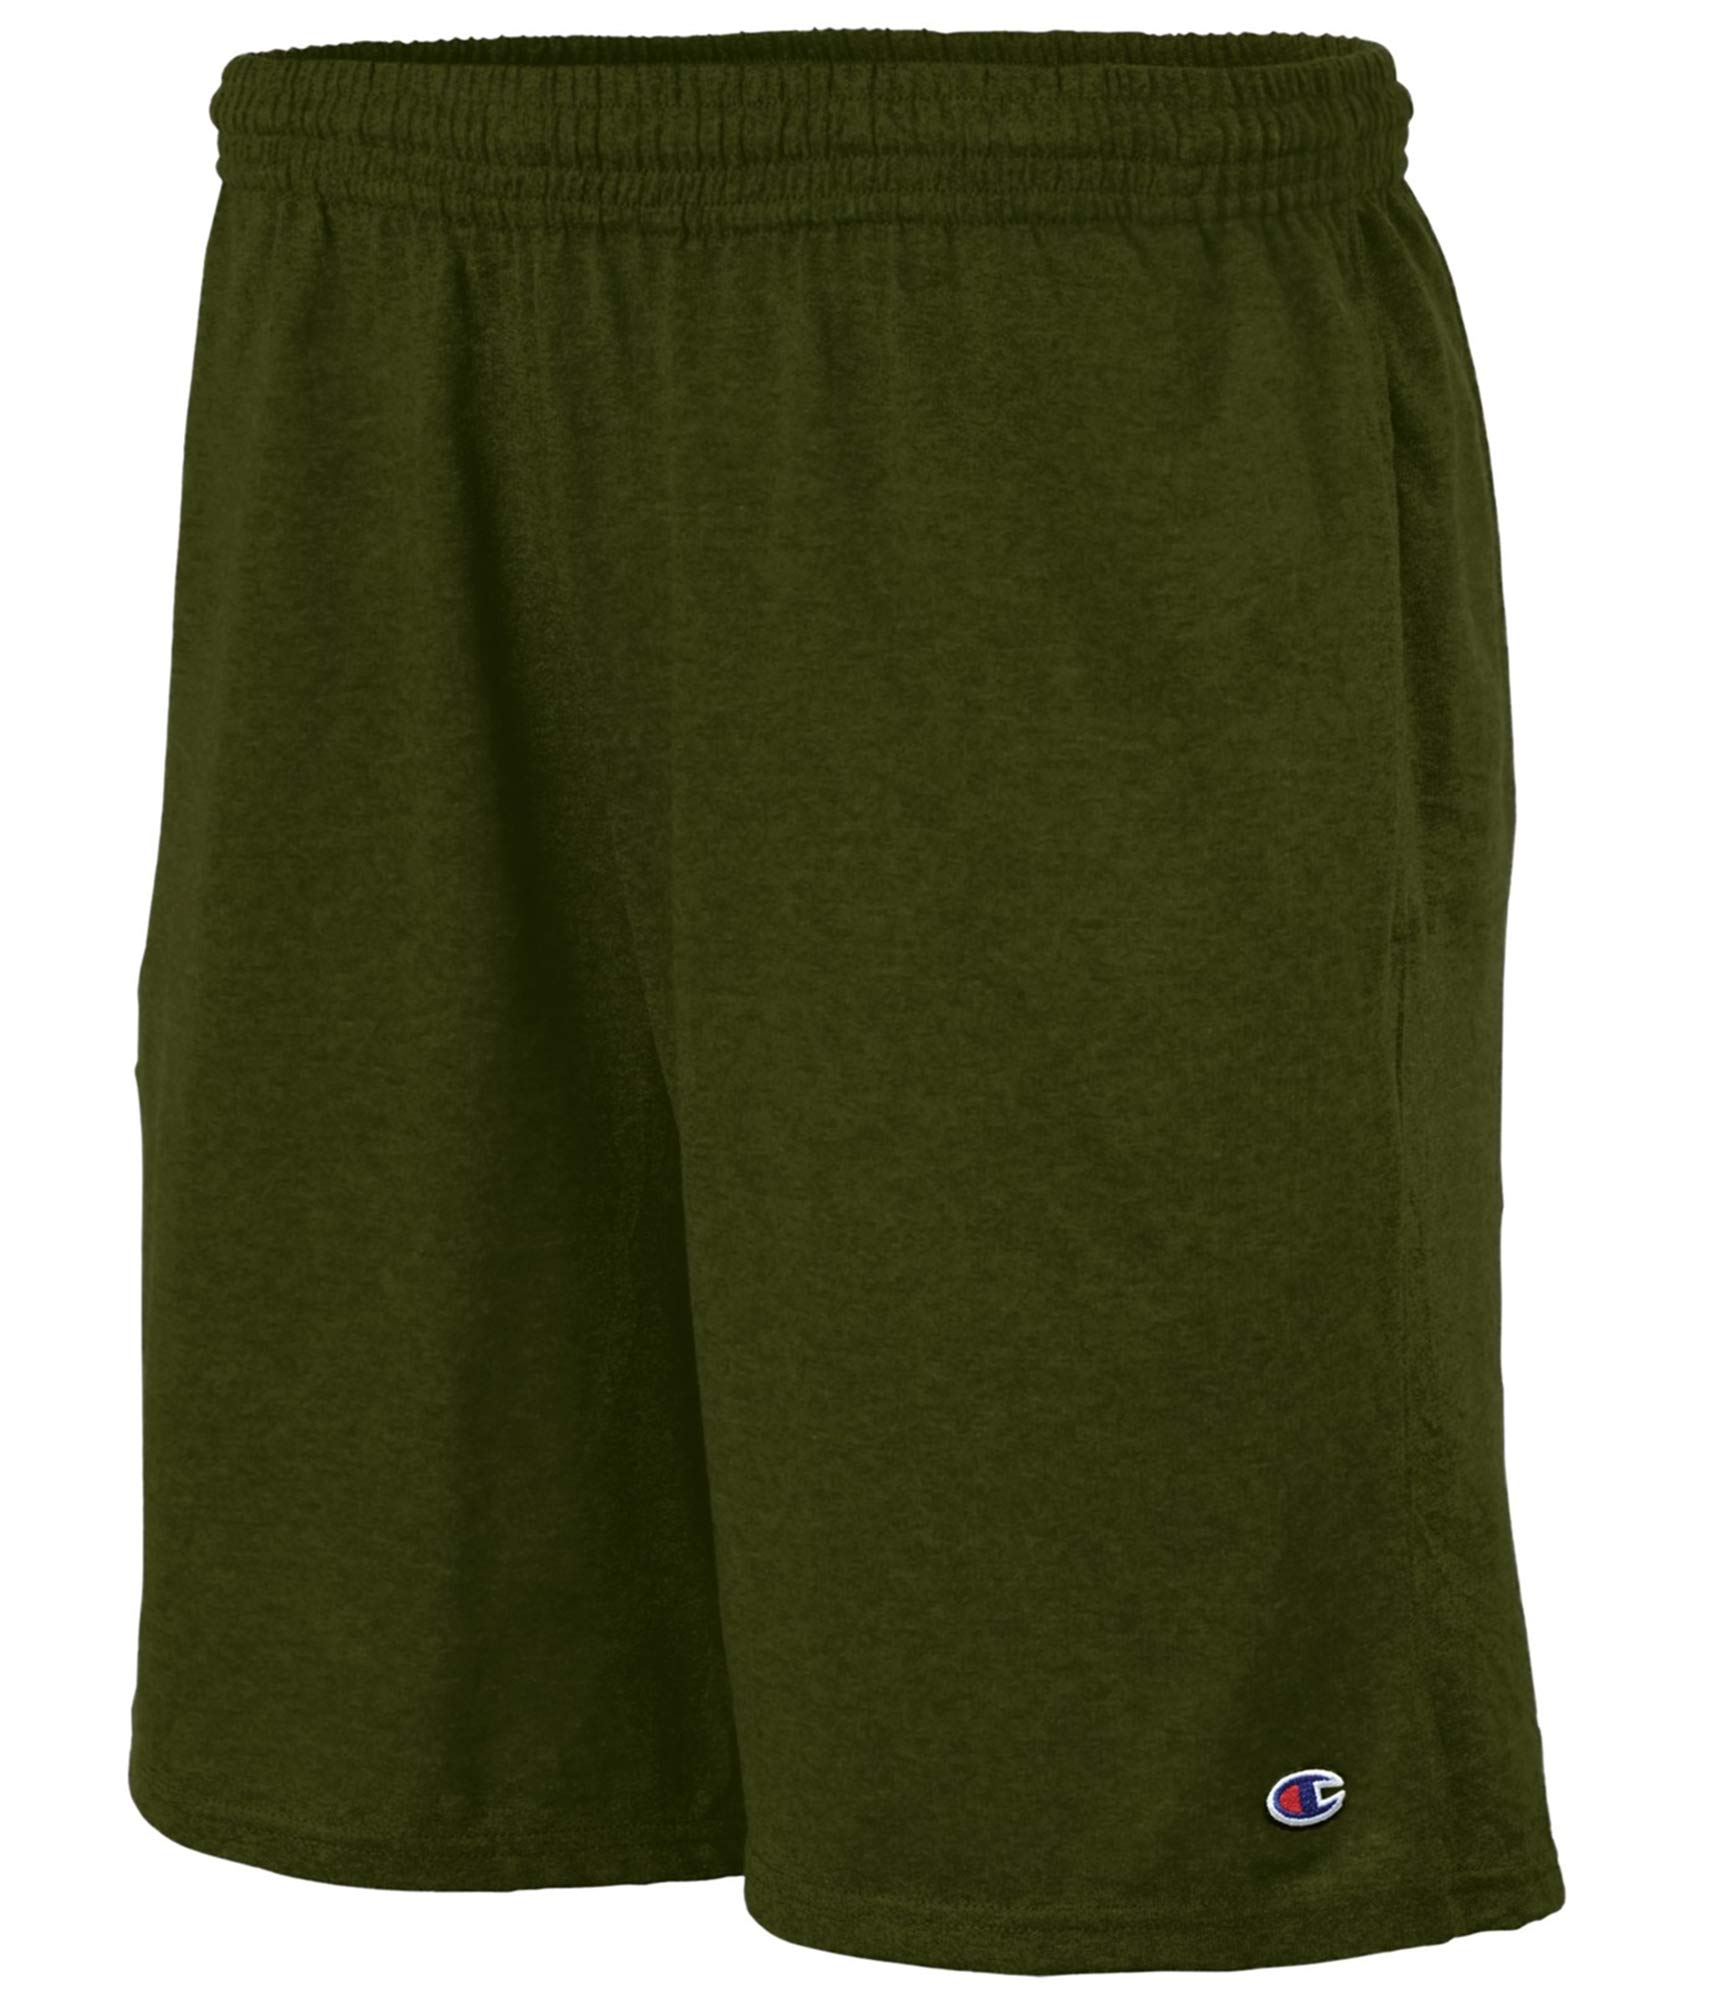 Champion Authentic Men`s Cotton Jersey 9-inch Shorts with Pockets, XL by Champion